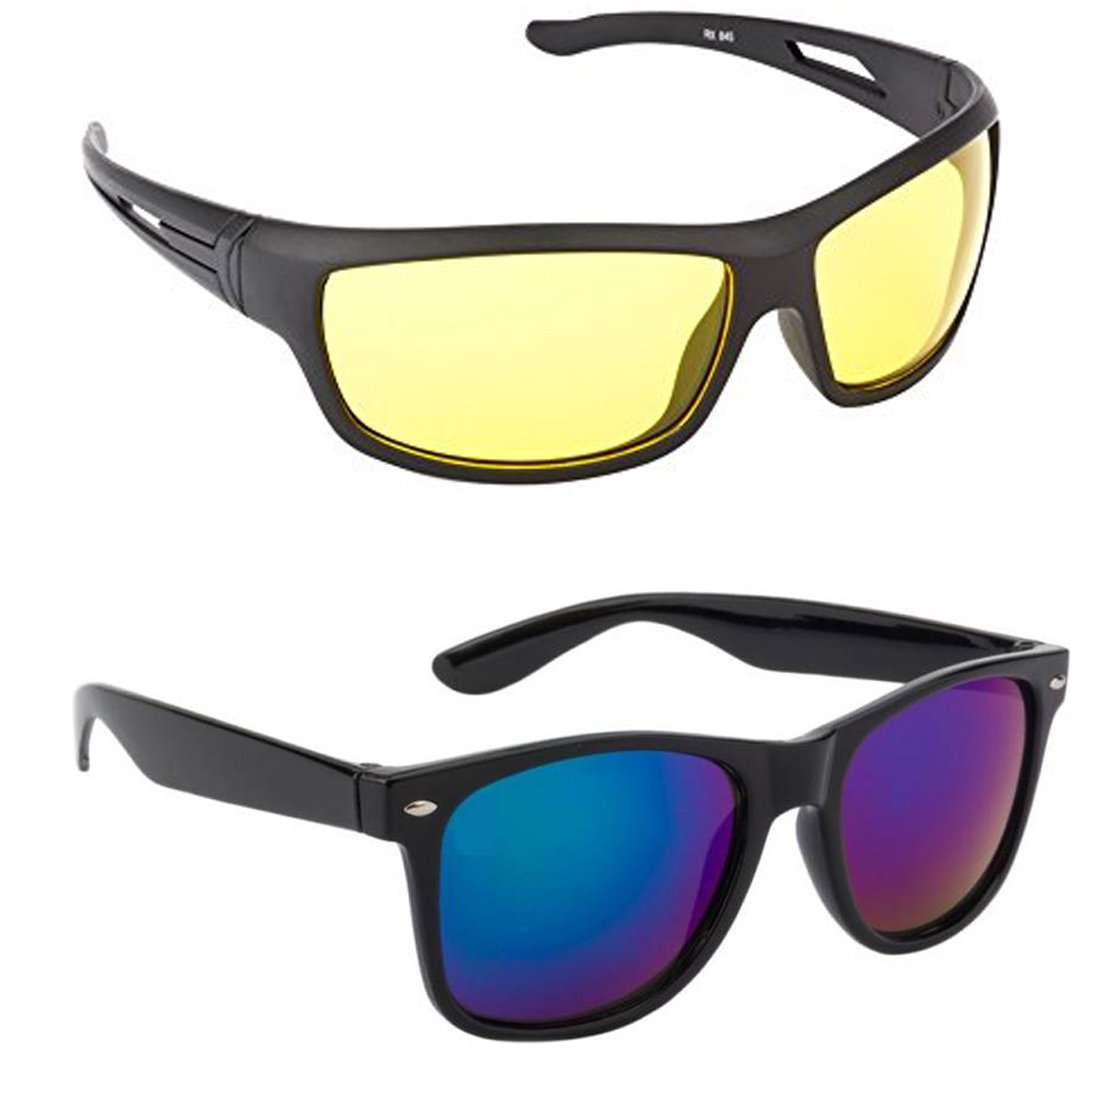 ELLIGATOR Day and Night Fishing Outdoor Anti Glare Unisex Sunglasses (Yellow and Blue)